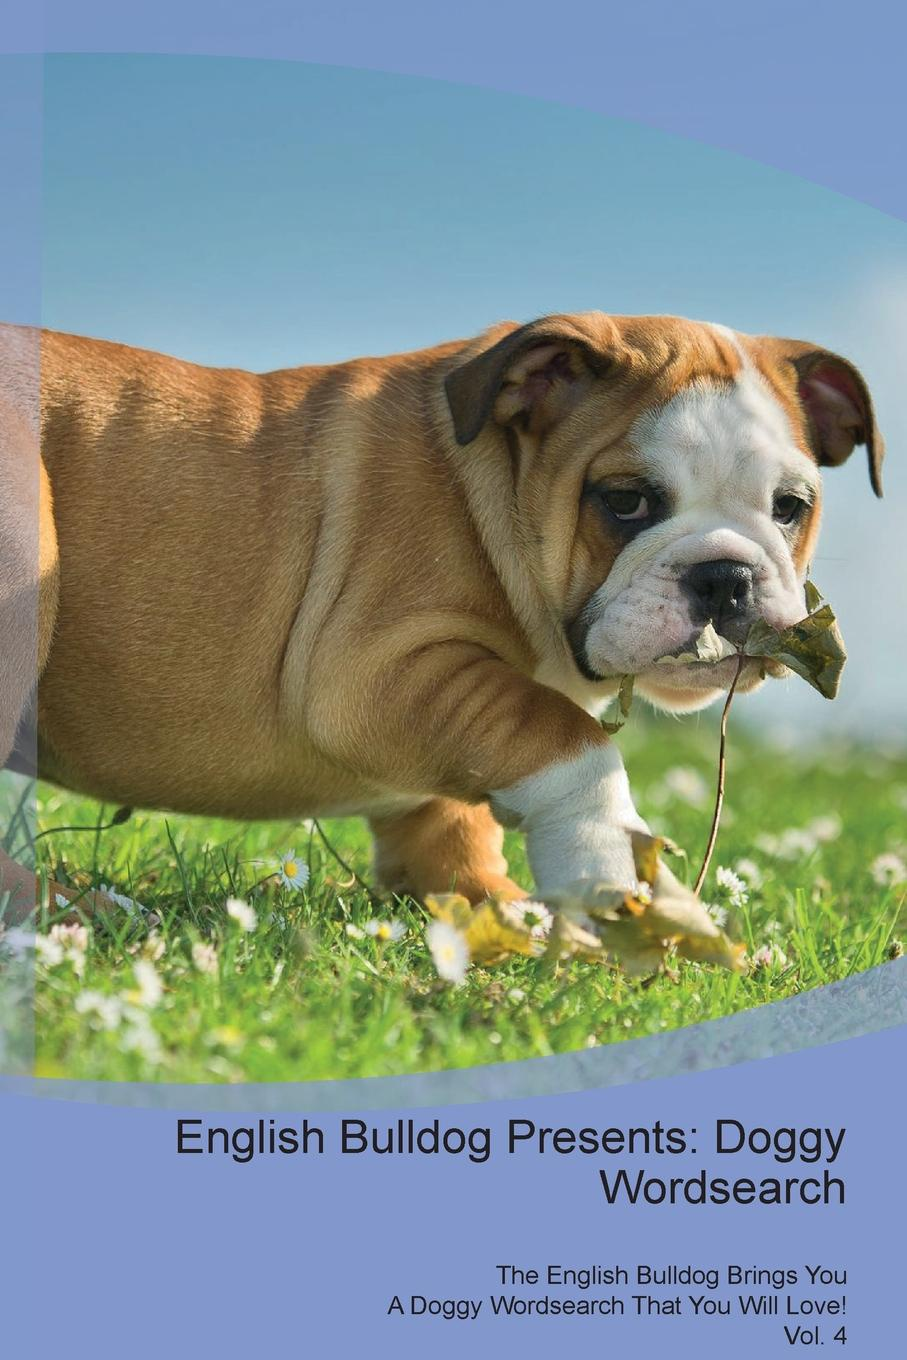 Doggy Puzzles English Bulldog Presents. Wordsearch The Brings You A That Will Love! Vol. 4